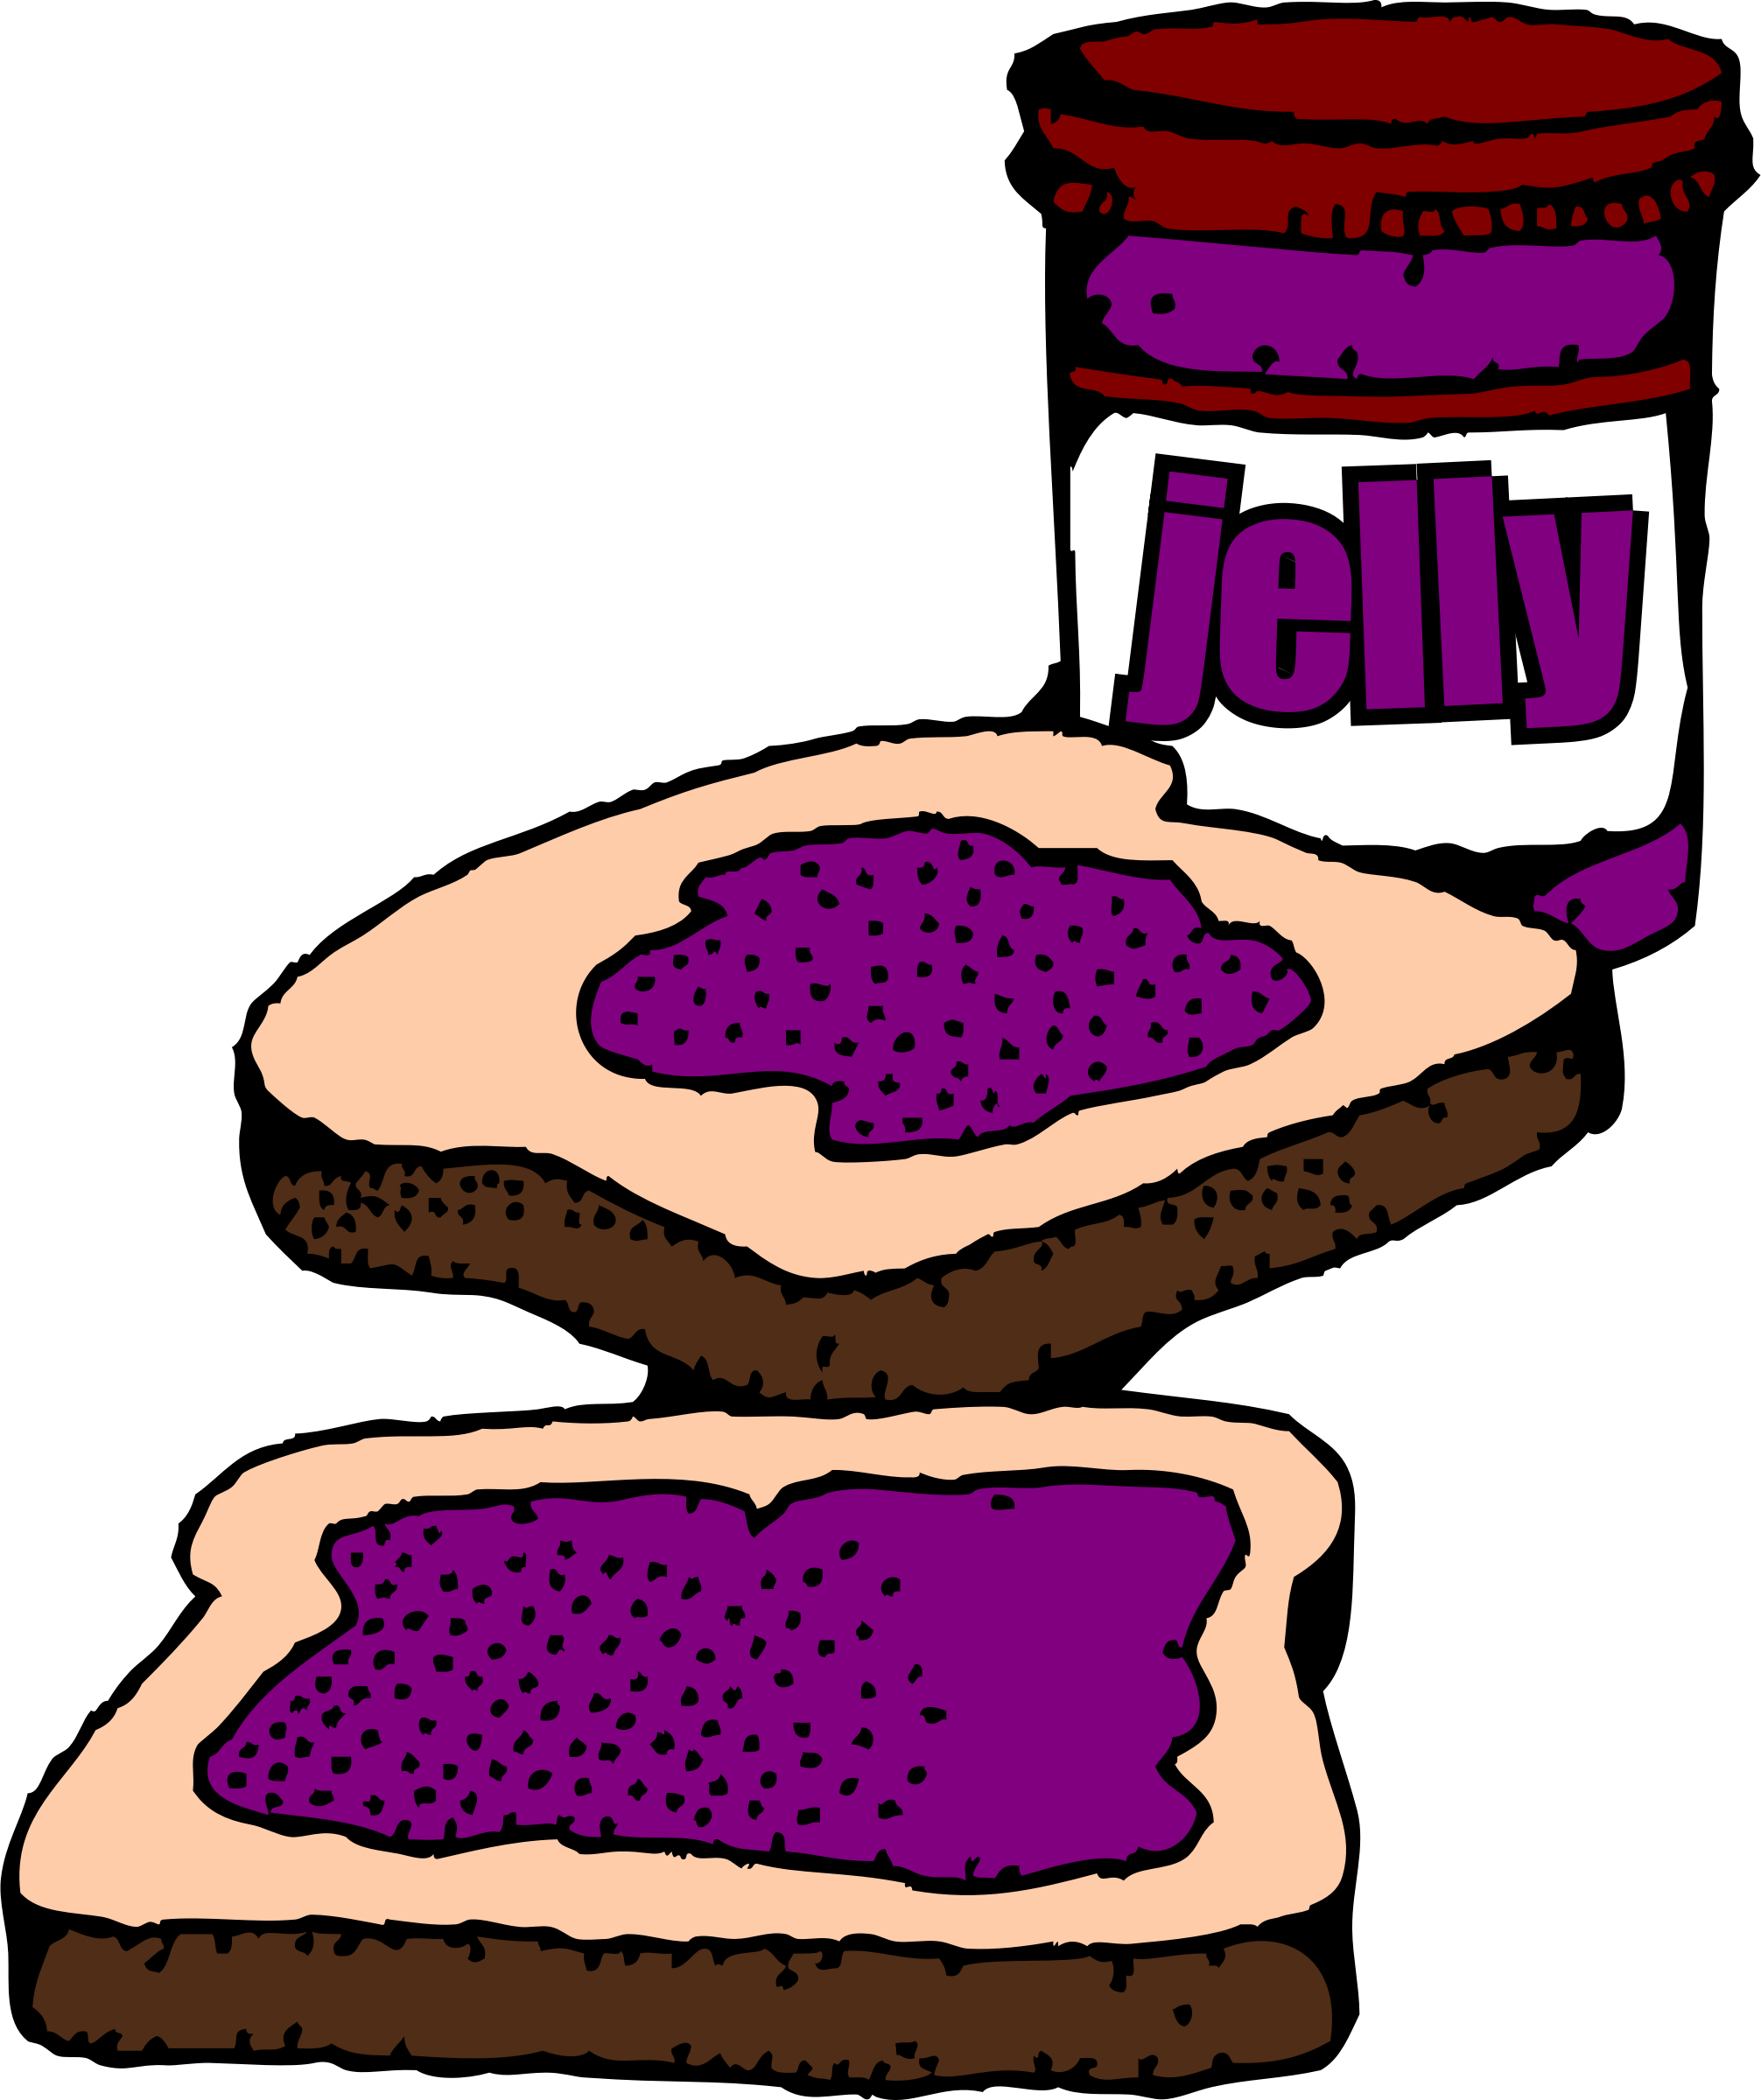 Jelly clipart cold food. Jellie cartoon red clip